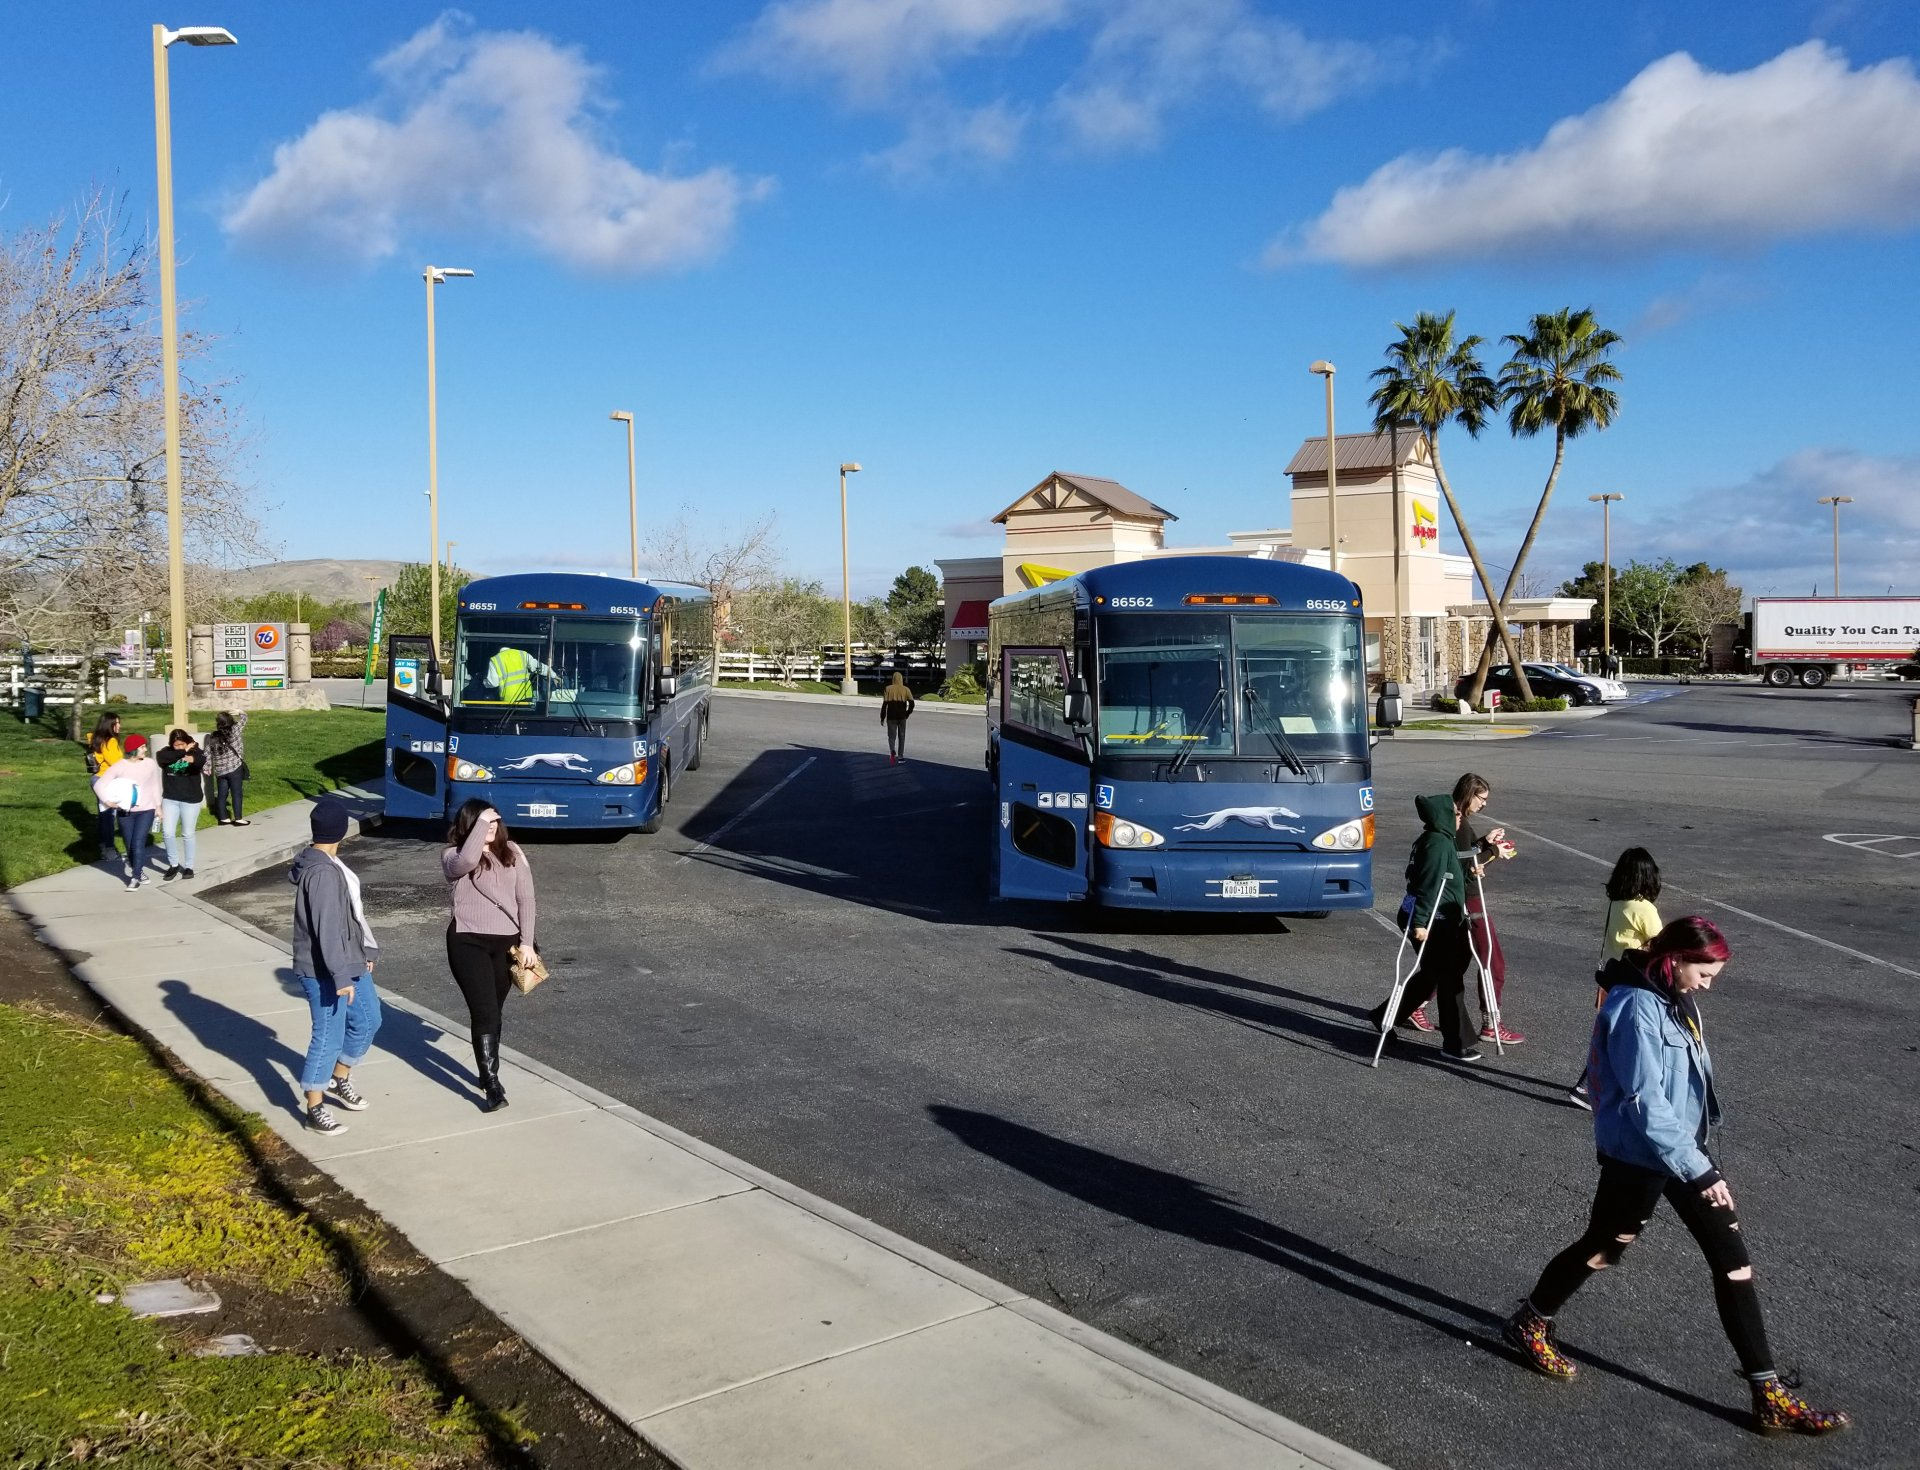 Humboldt State Homeward Bound buses make a pit stop in Lebec, California en route to Arcata on March 17, 2018. | File photo by Luis Lopez